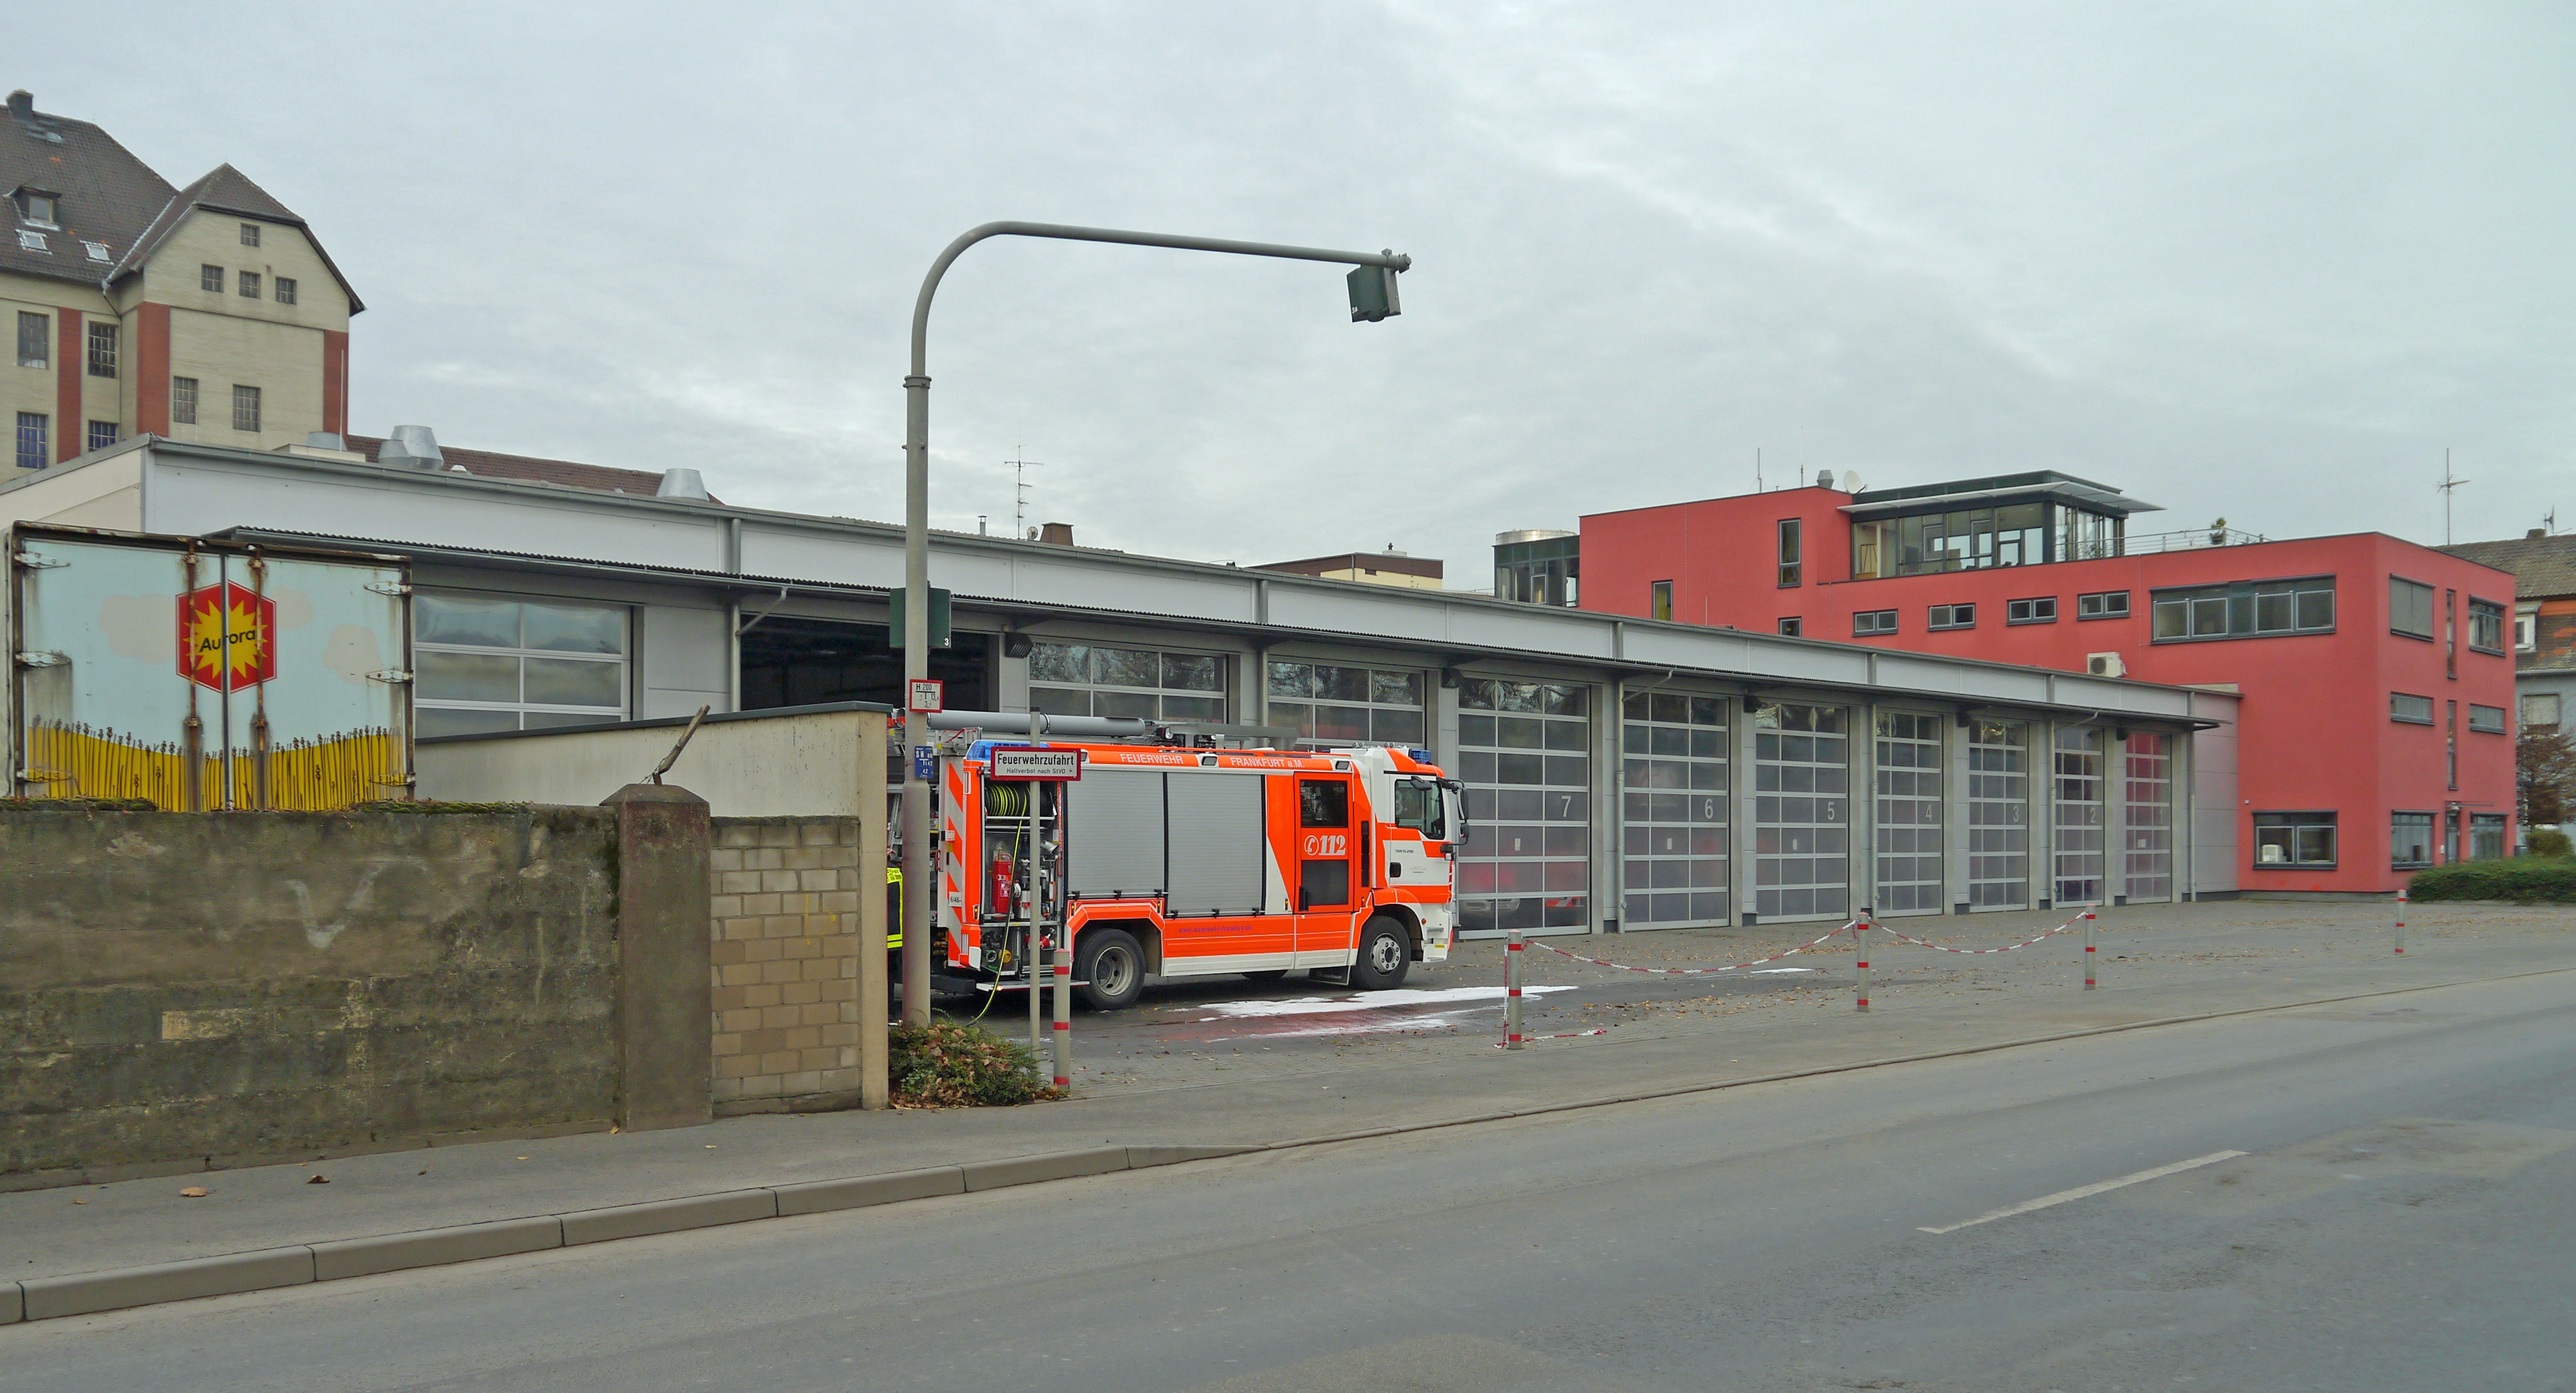 Fire station - Wikipedia